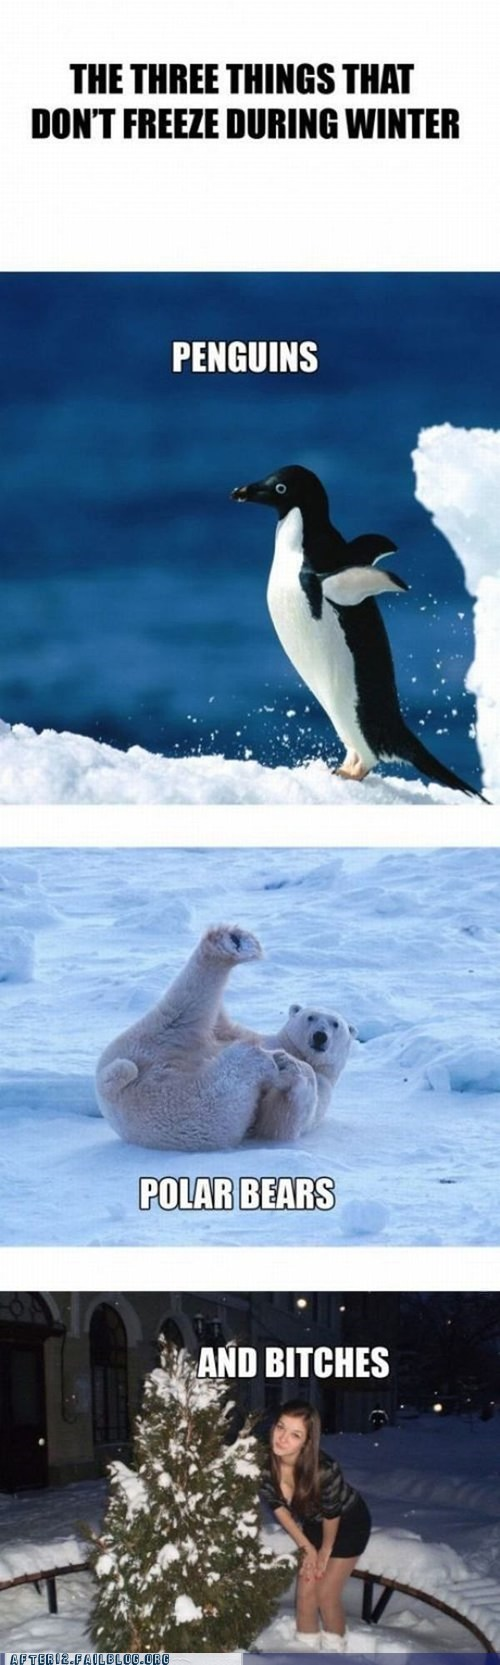 freeze,ice,penguins,polar bear,snow,winter,woo girls